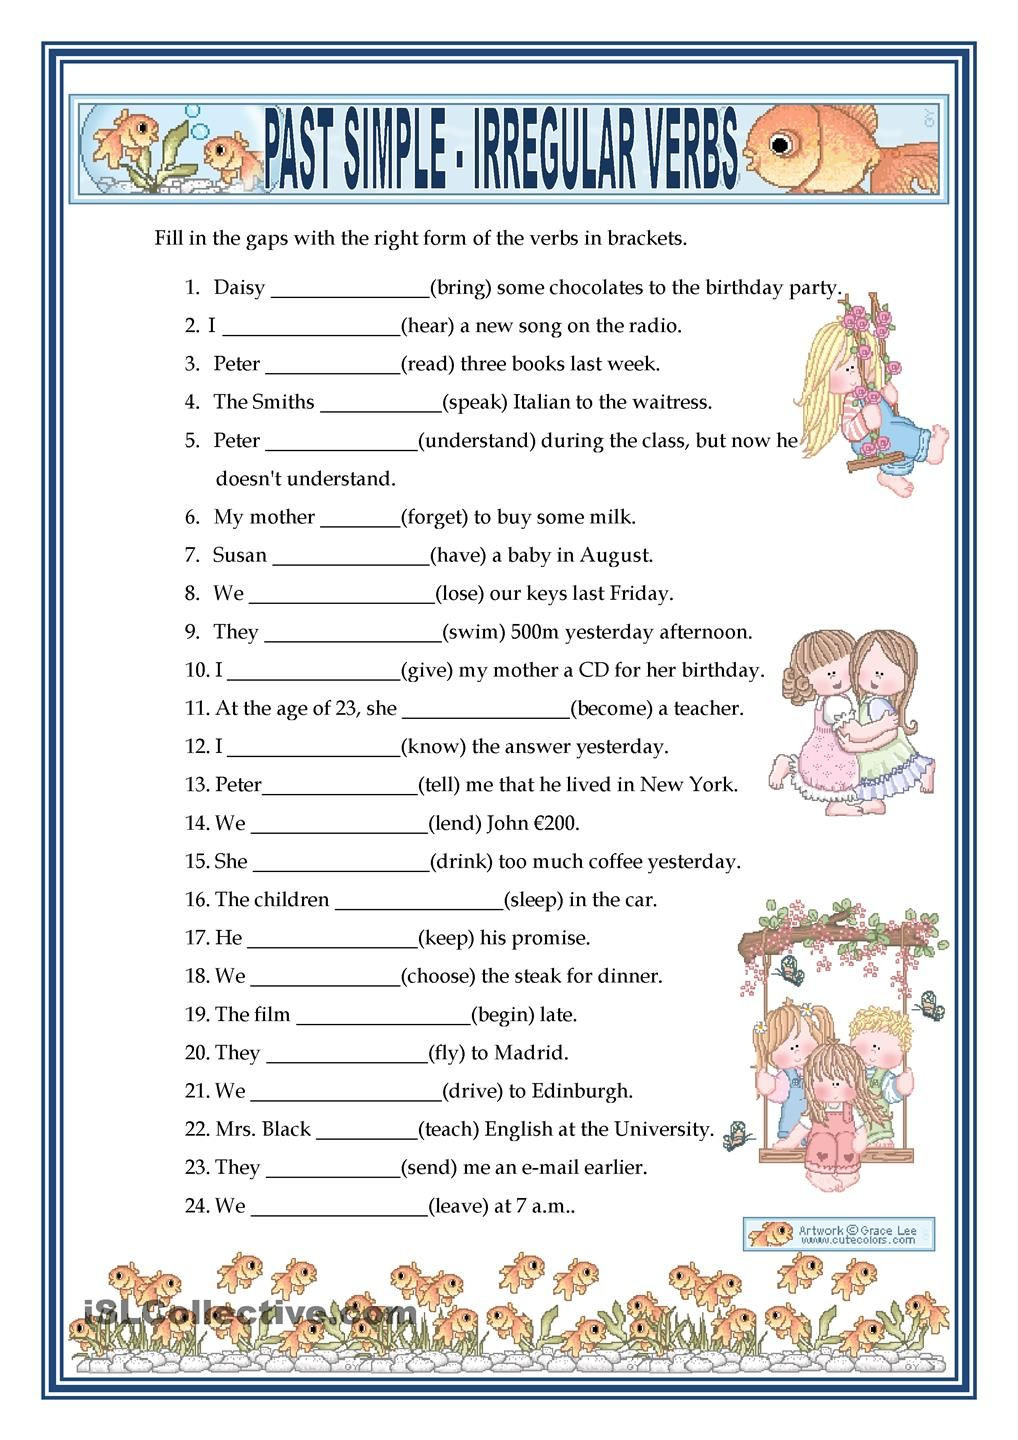 Irregular Verbs Worksheet Pdf Past Simple Irregular Verbs